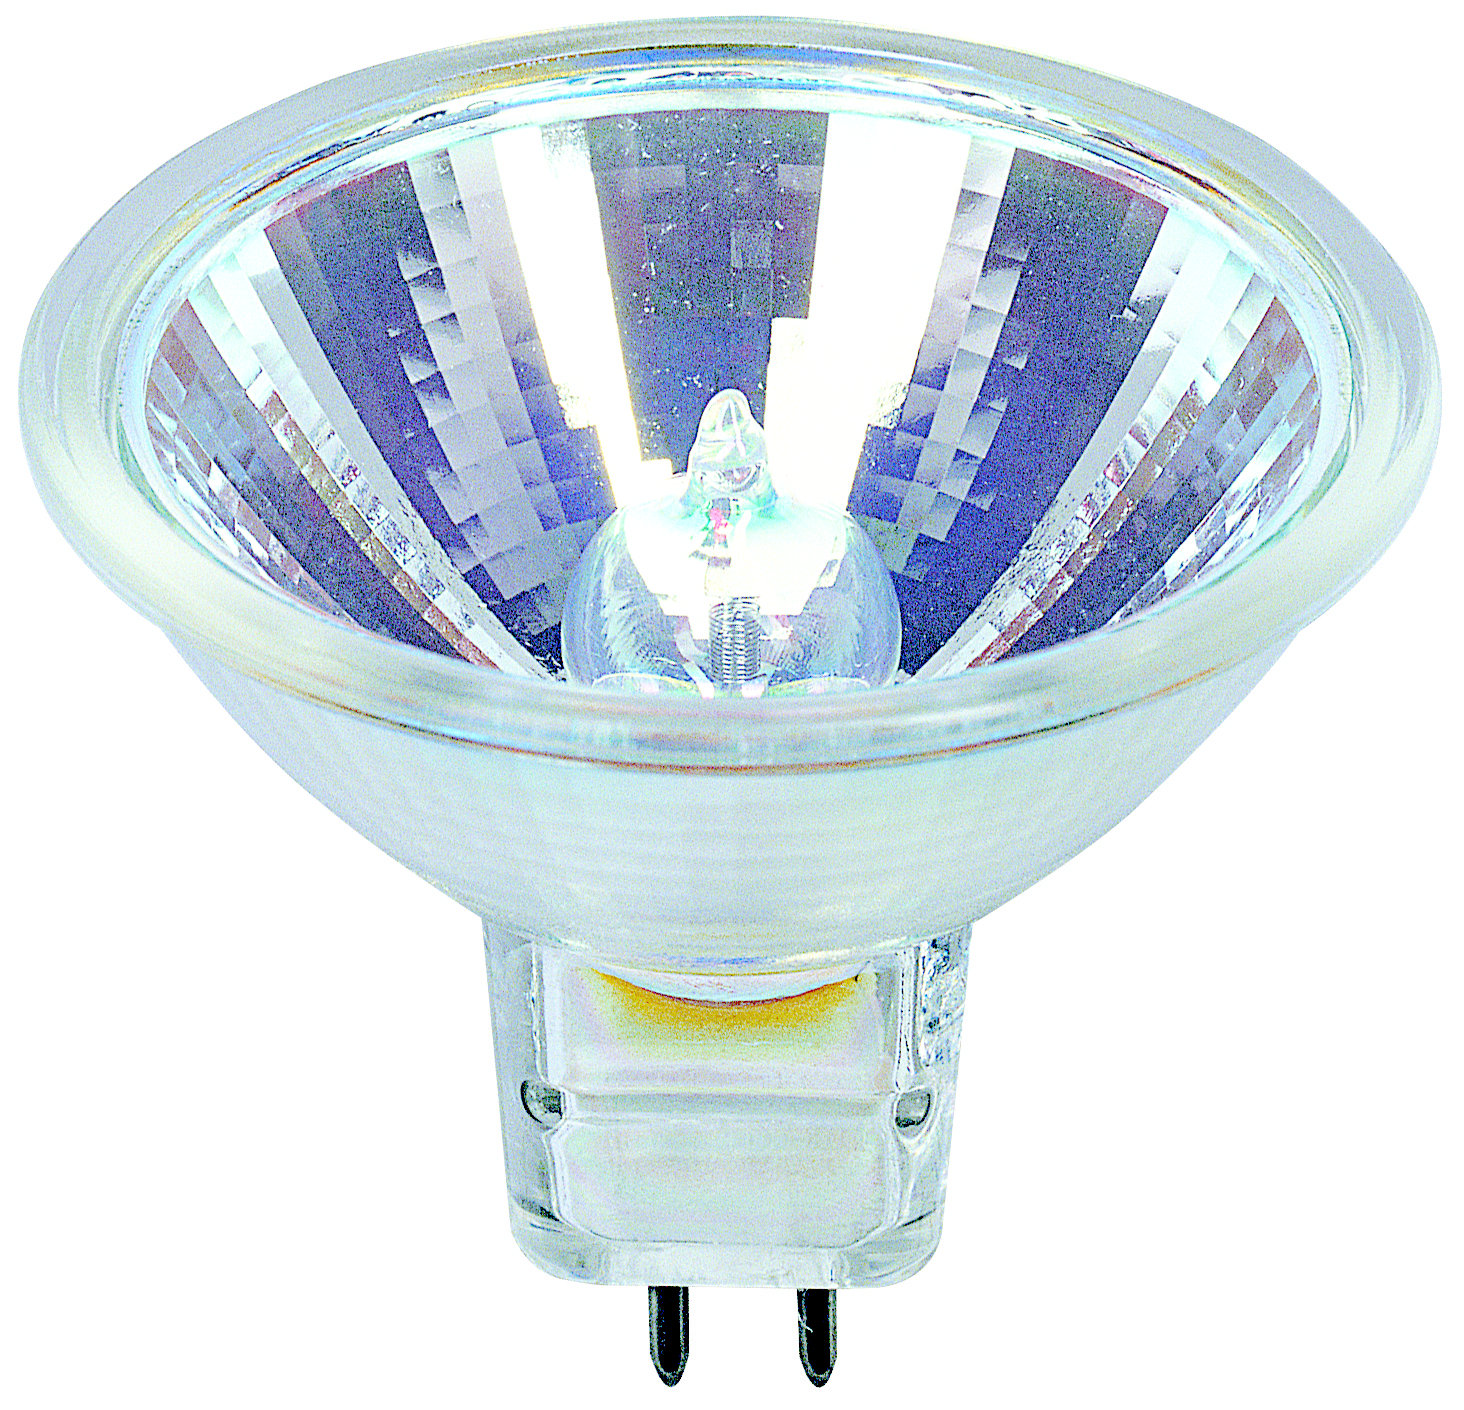 Low voltage l&s High service life and luminous efficiency  sc 1 st  Ledvance & High voltage and low voltage u2013 the right halogen lamp for every ...